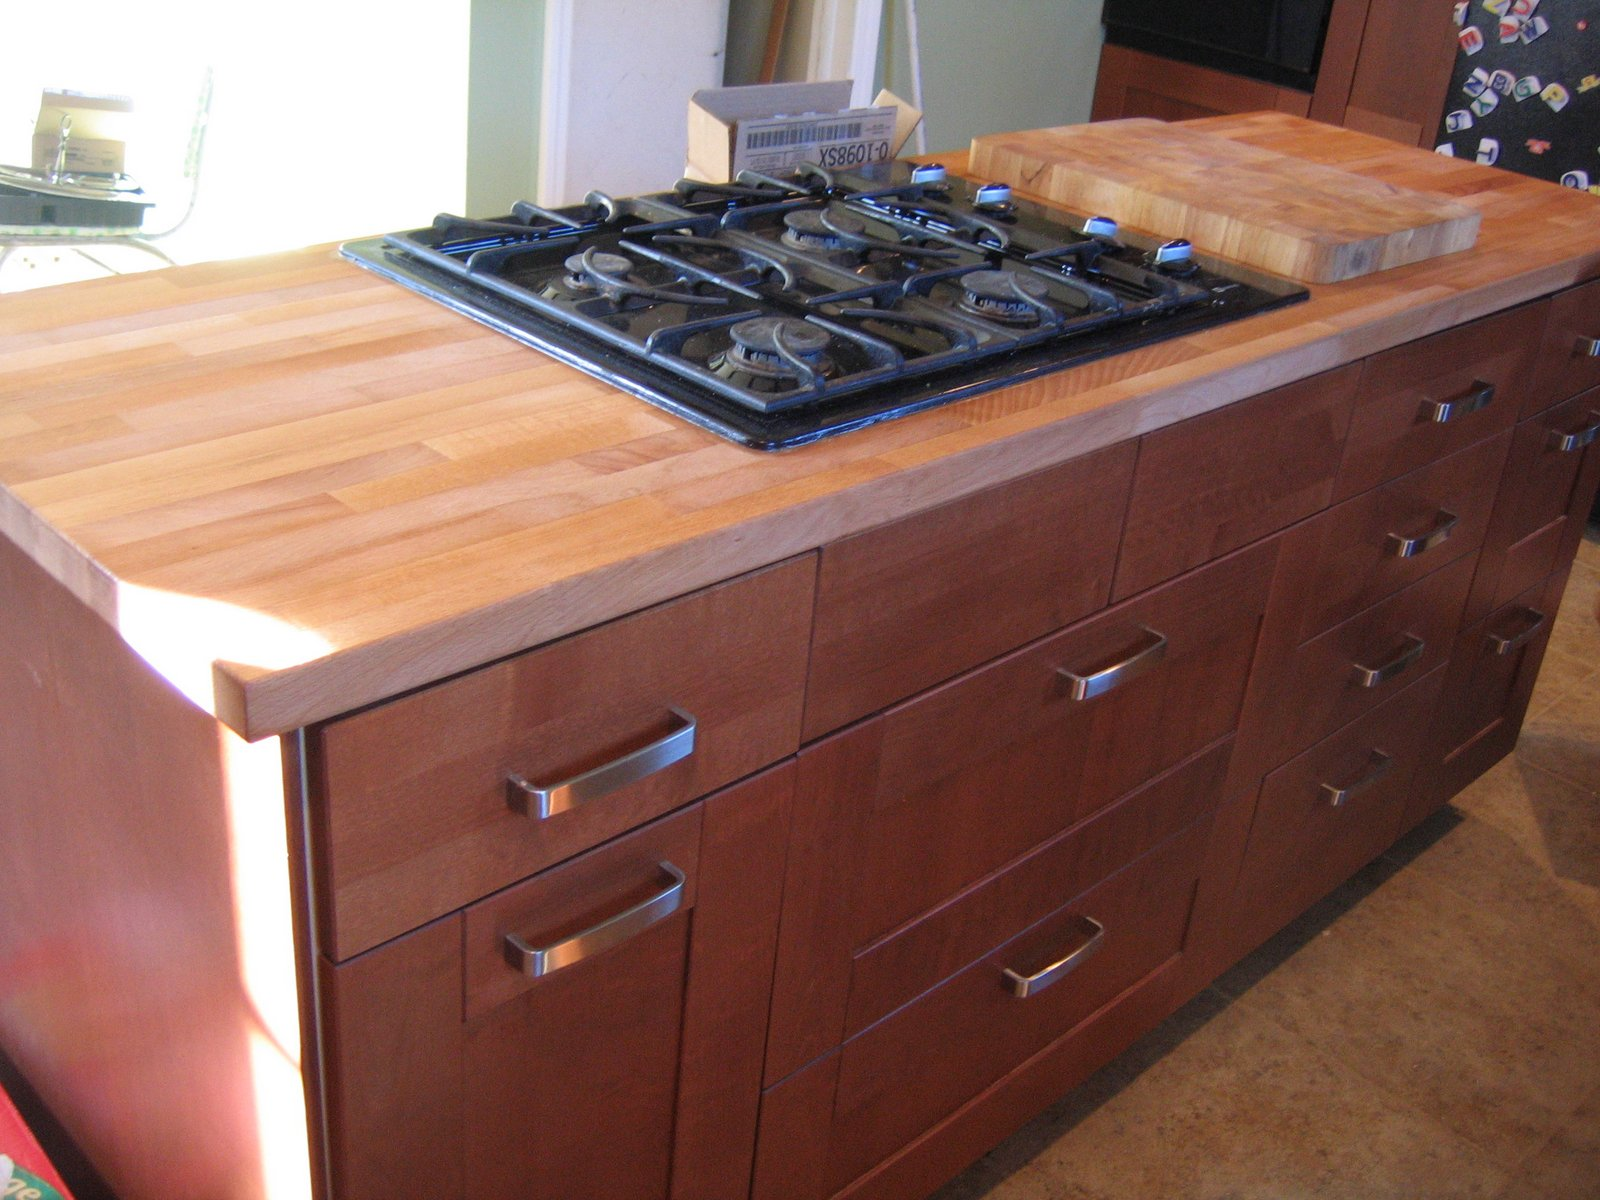 Sanding butcher block countertops home improvement How to install butcher block countertop